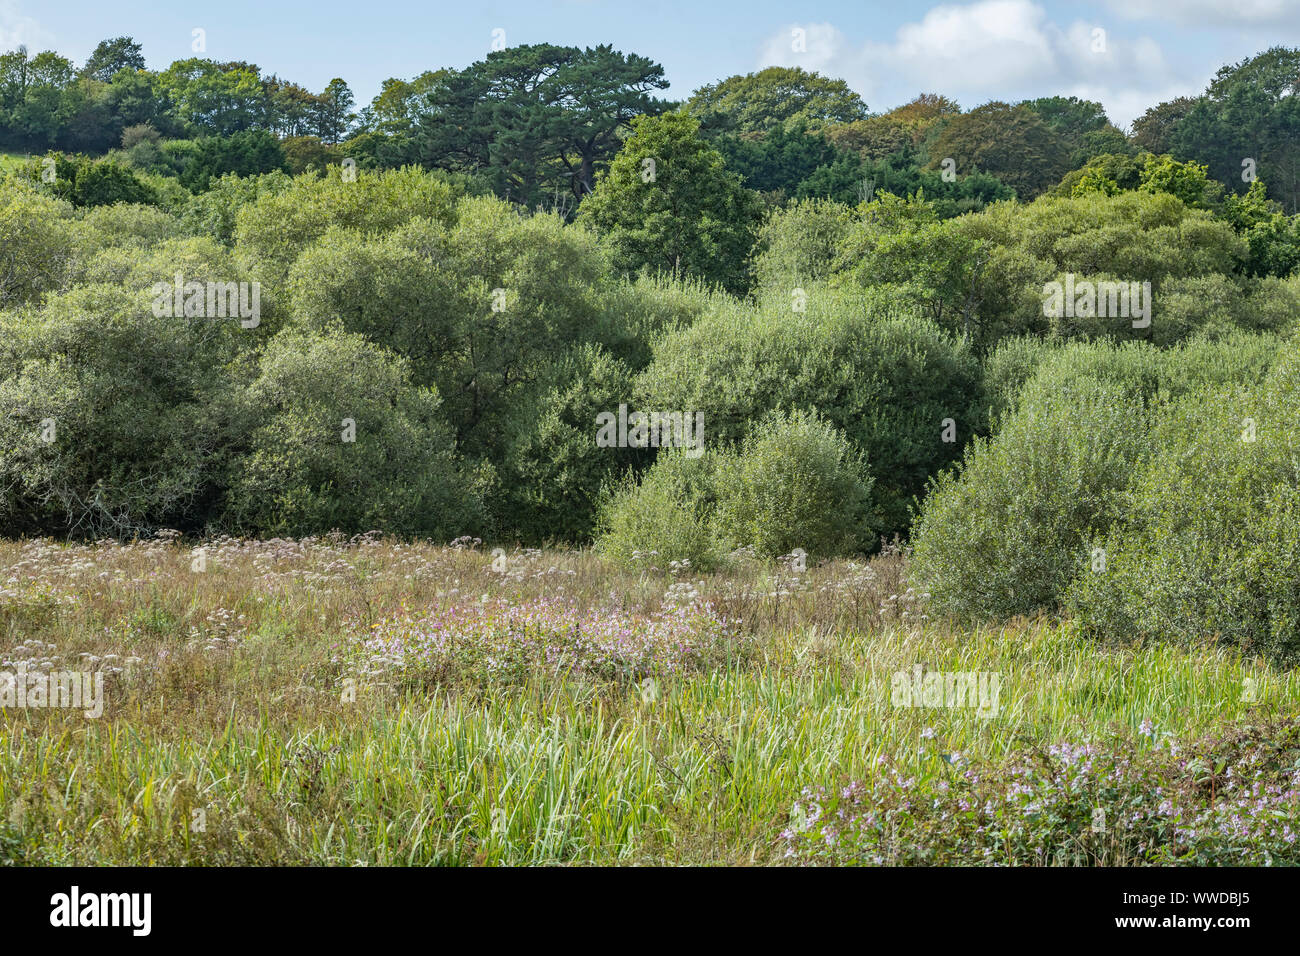 Water meadow infested by the troublesome weed Himalayan Balsam / Impatiens glandulifera. Likes damp soils / ground. Himalayan balsam invasion. Stock Photo